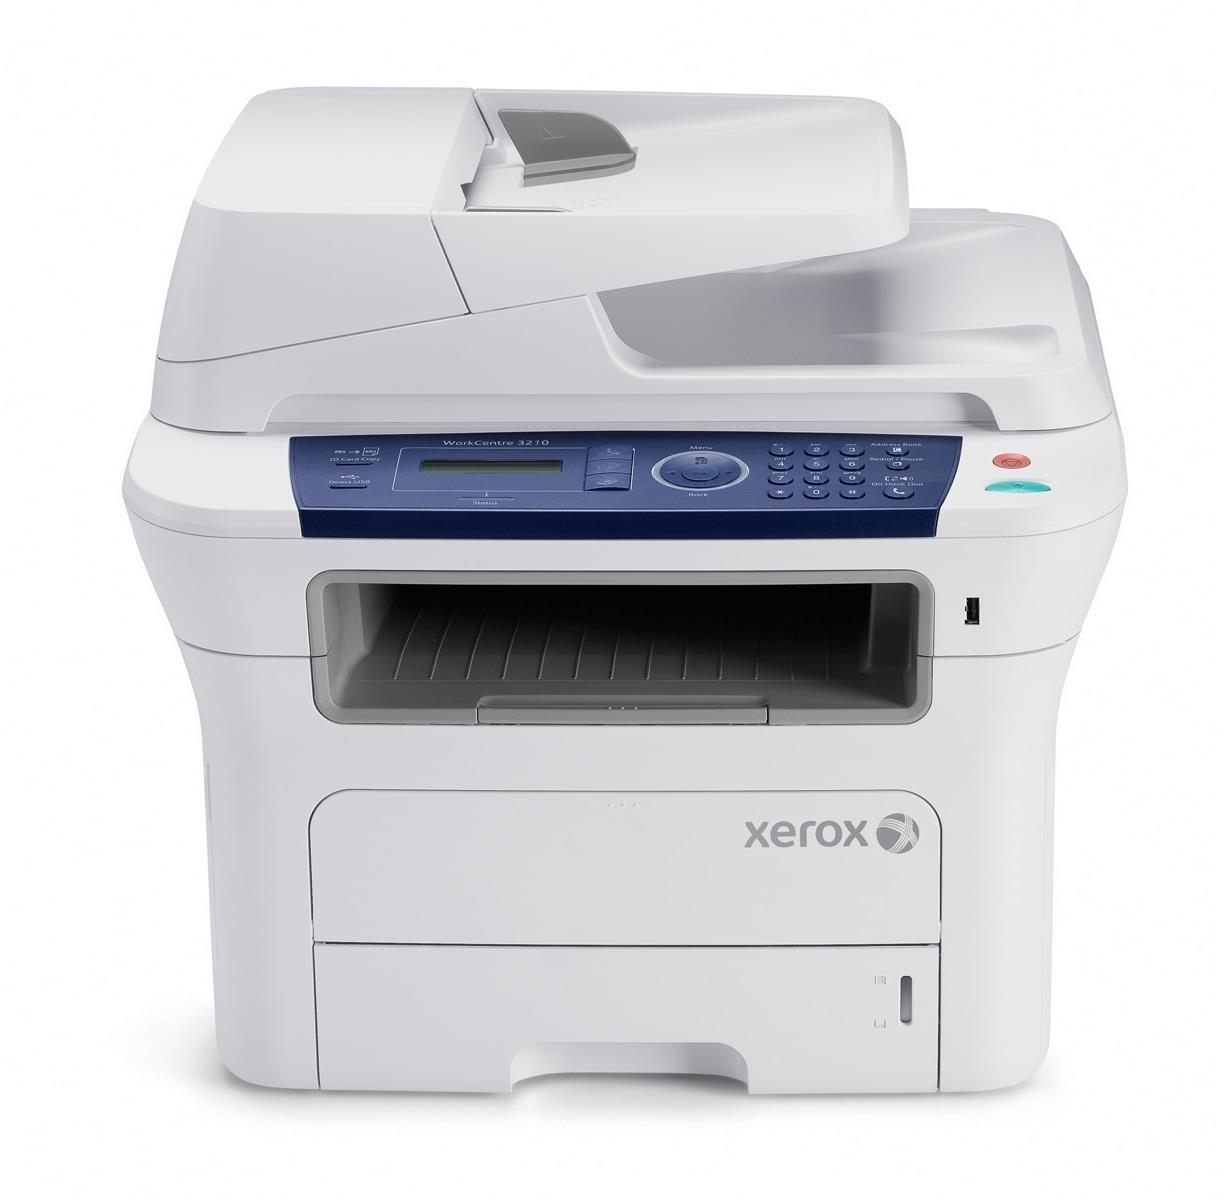 Xerox WorkCentre 3210VN Mono Laser A4 Printer MultiFunction Scan Copy Fax